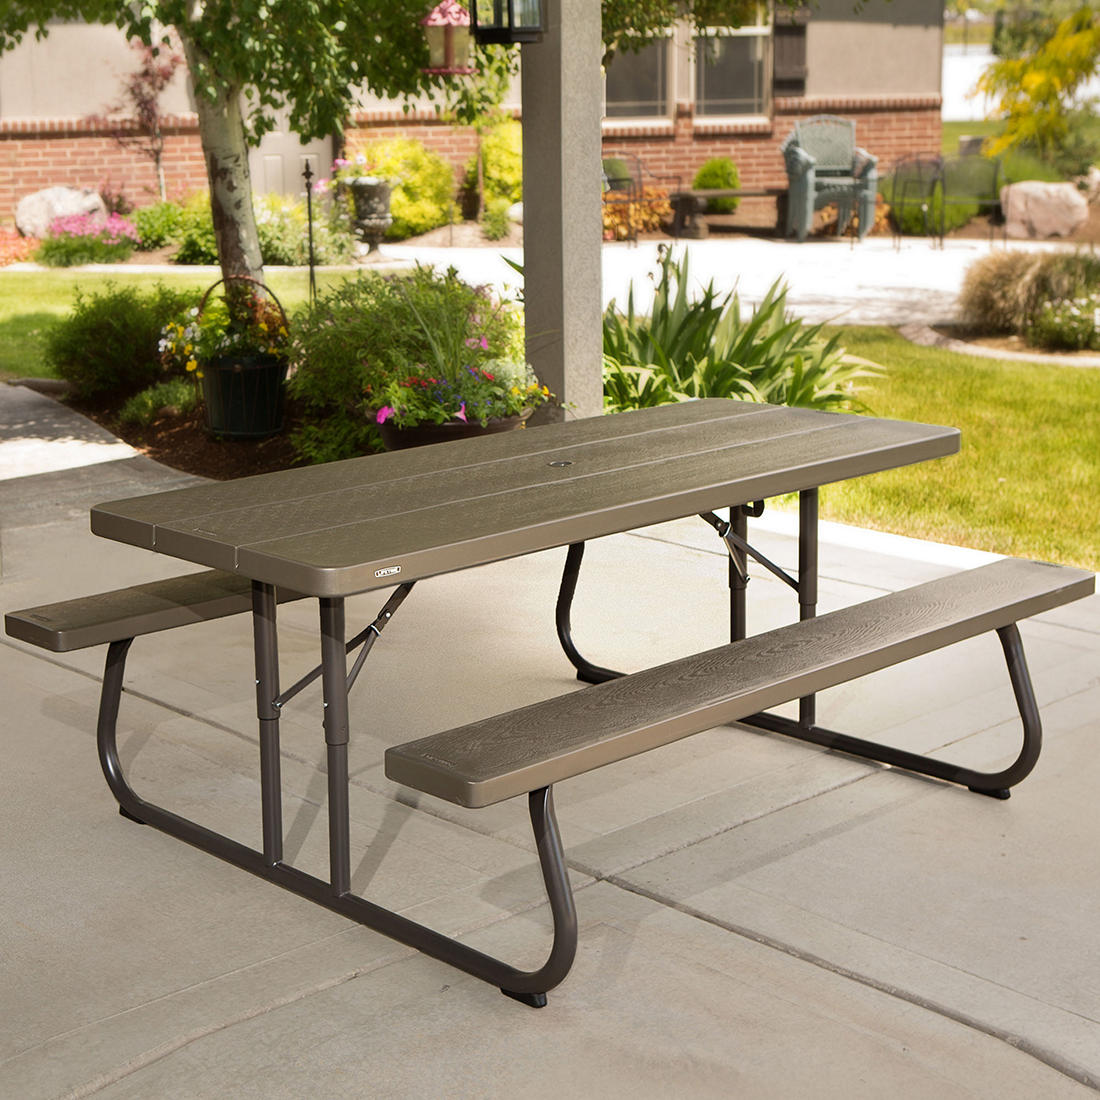 Pleasing Lifetime 6 Folding Picnic Table Brown Pabps2019 Chair Design Images Pabps2019Com